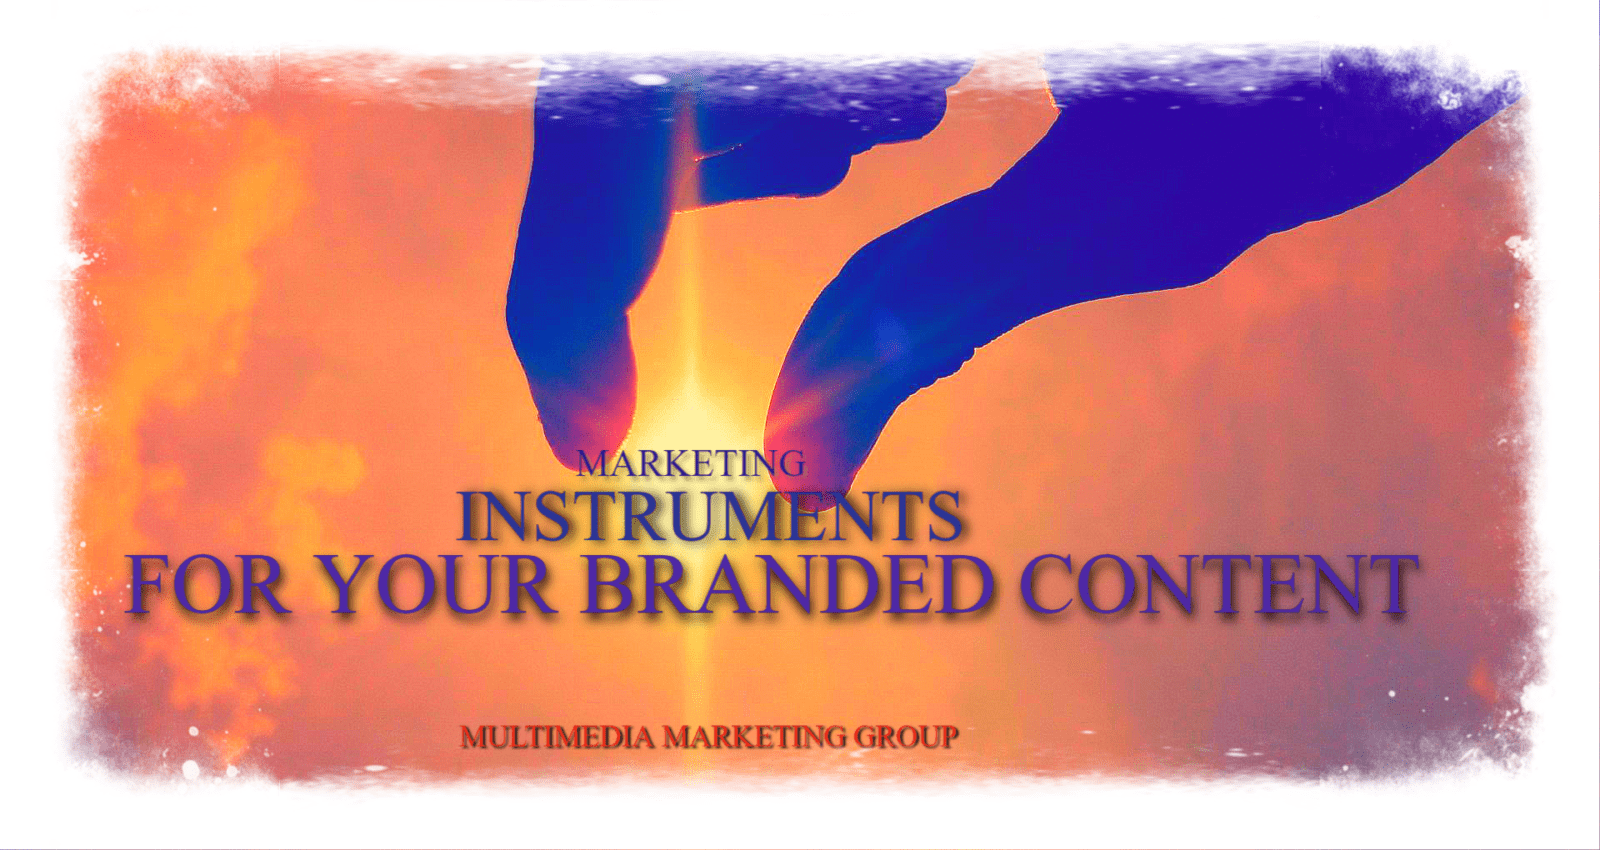 Marketing Instruments for Your Branded Content